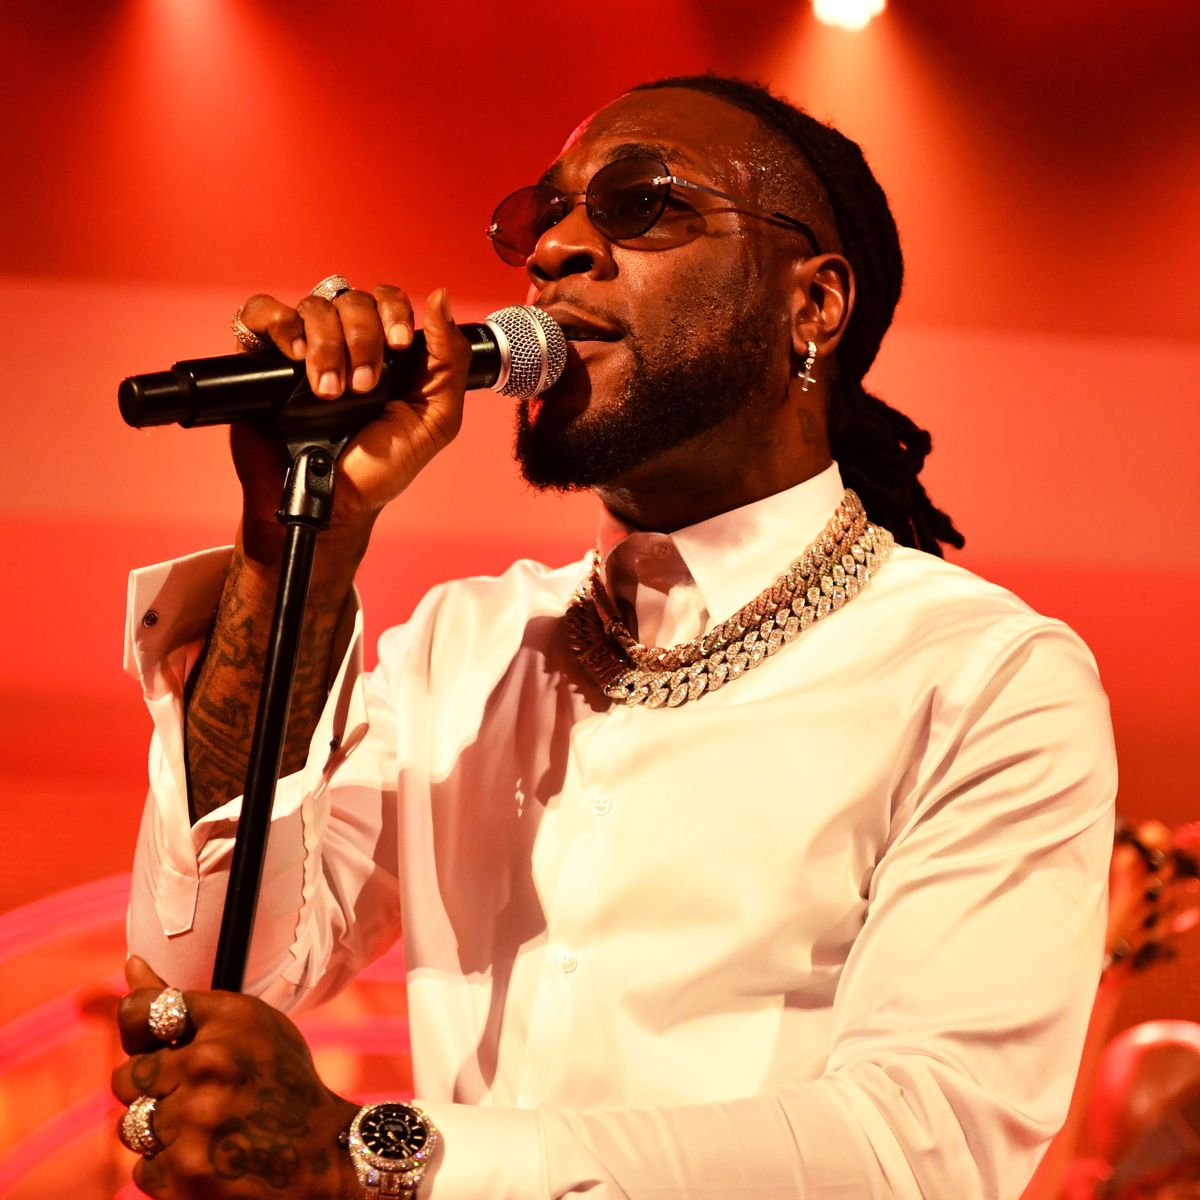 Burna Boy Twice As Tall Review: Feeding The African Community Worldwide